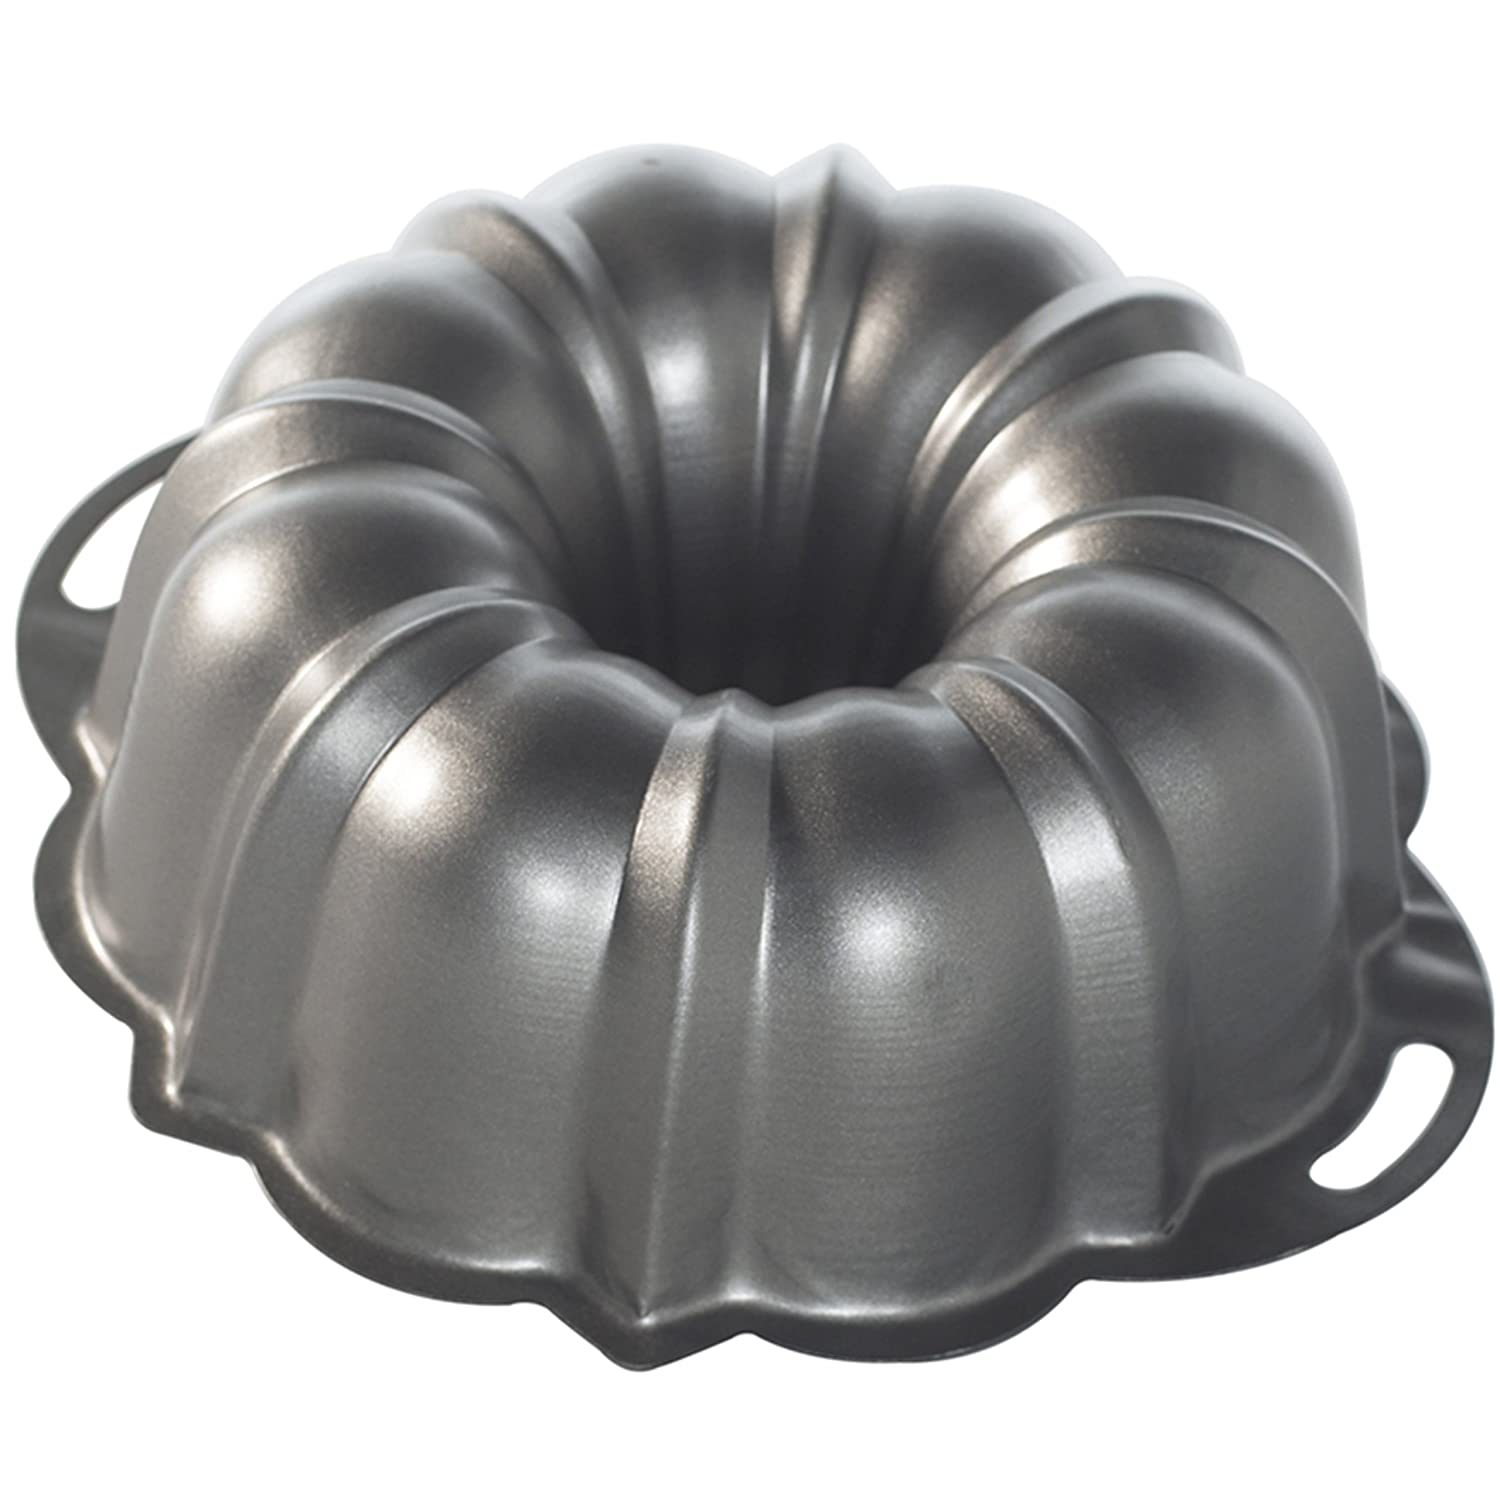 Bundt cake pans for sale - Nordic Ware Pro Form Anniversary Cake Pan 12 Cup